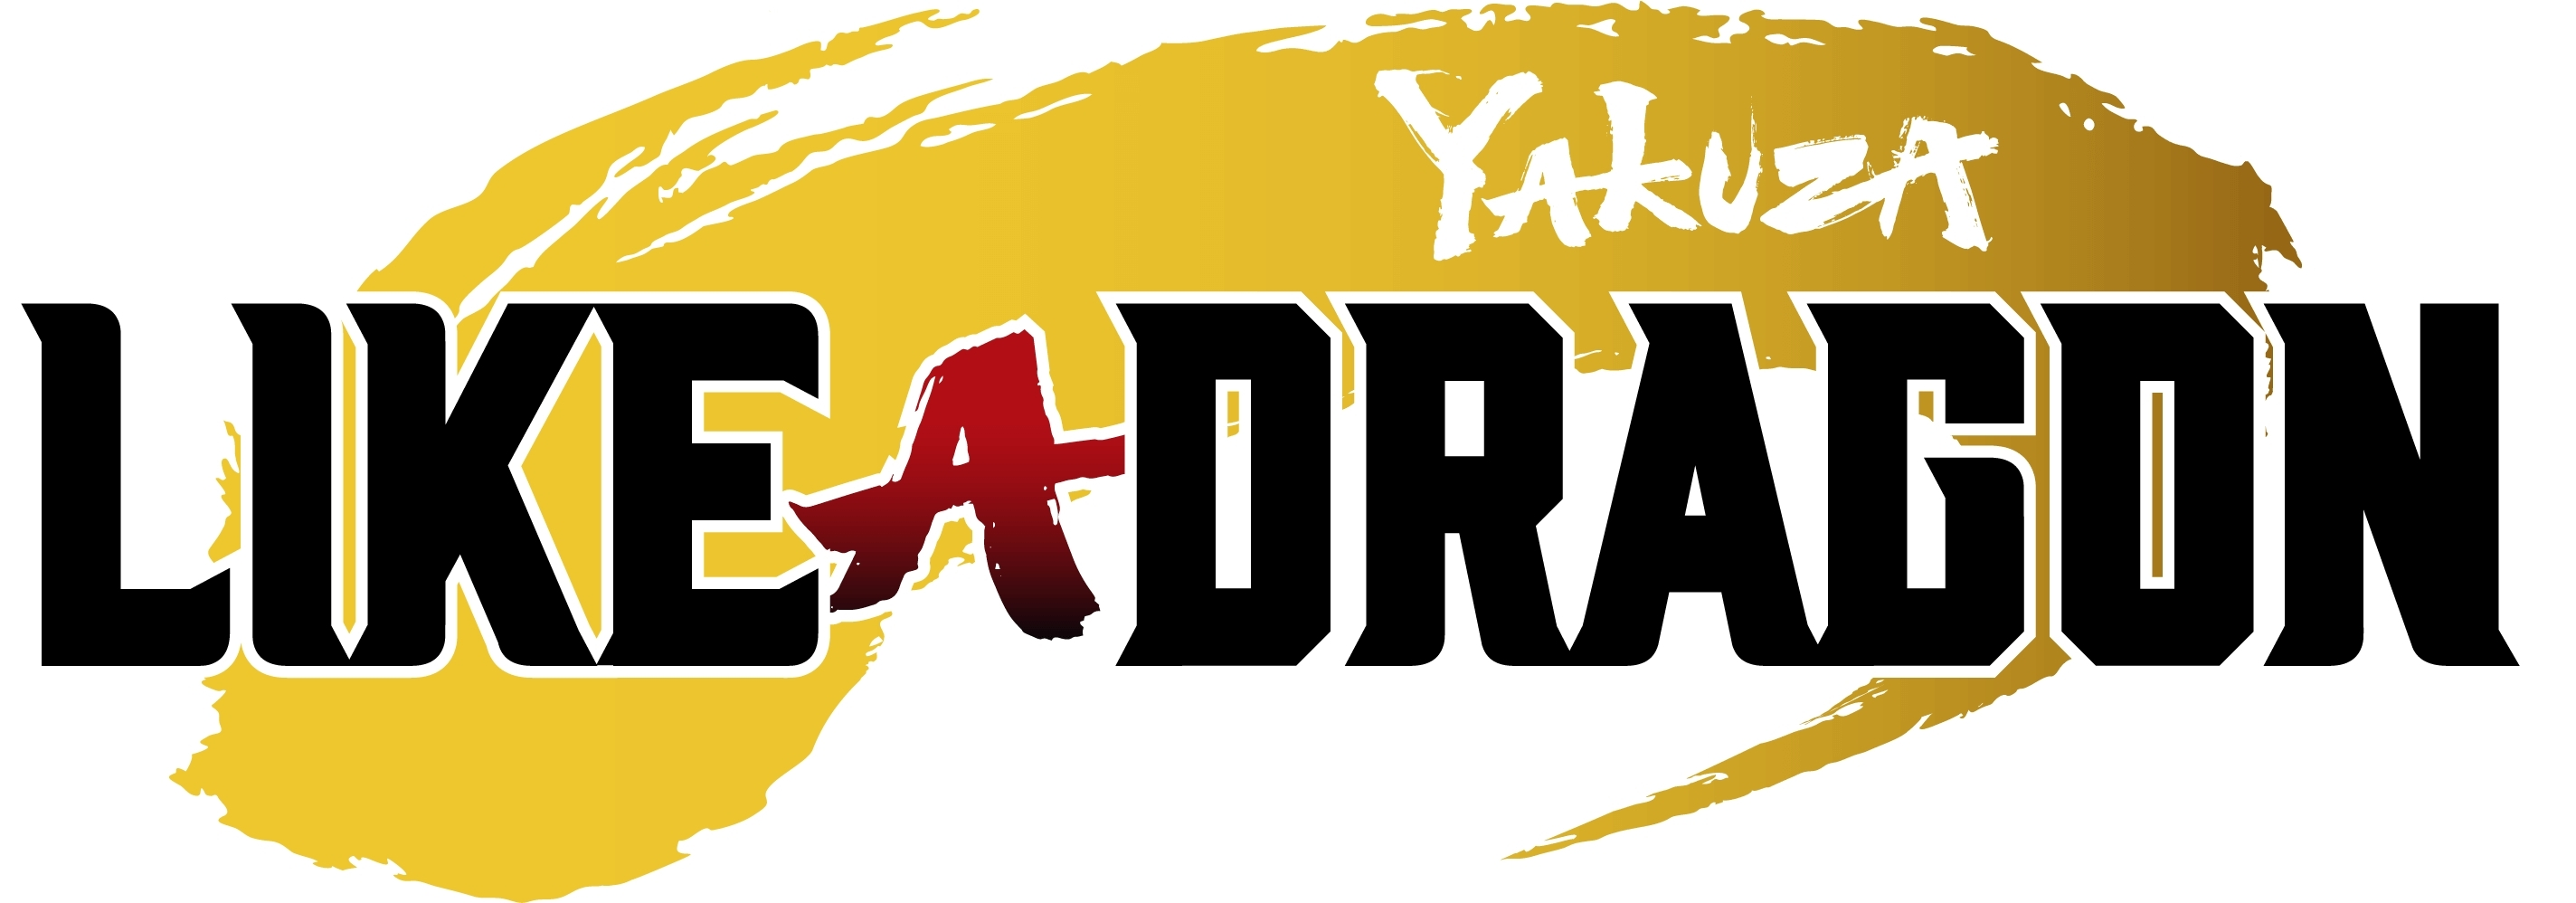 An Rpg Like None Other Yakuza Like A Dragon Reveals Heroes Of Tomorrow Trailer Announces Playstation 5 Version As Well As Casting Of Legendary Actor George Takei Business Wire